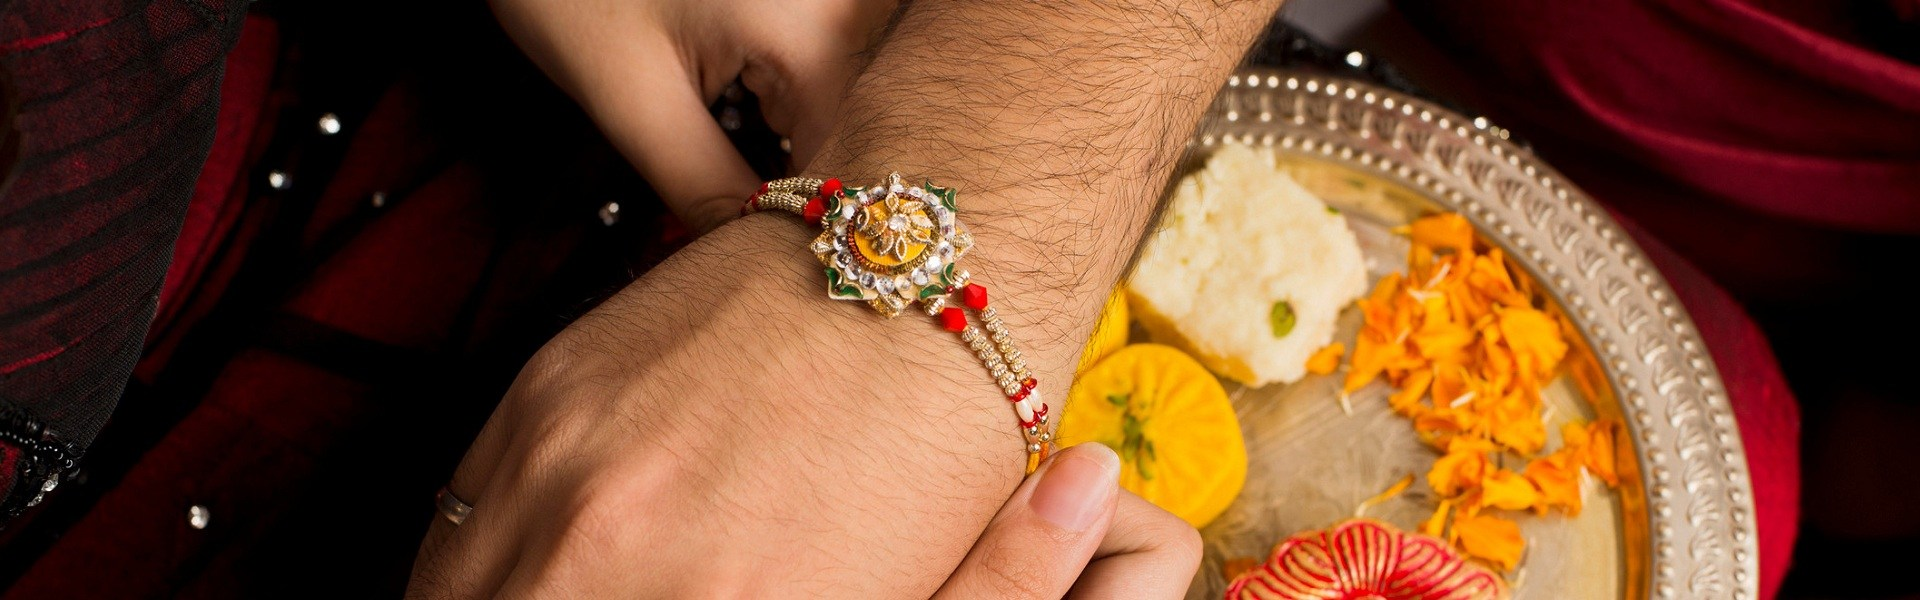 Top 5 Trendy Travel Related Rakhi Gift Ideas for Brother